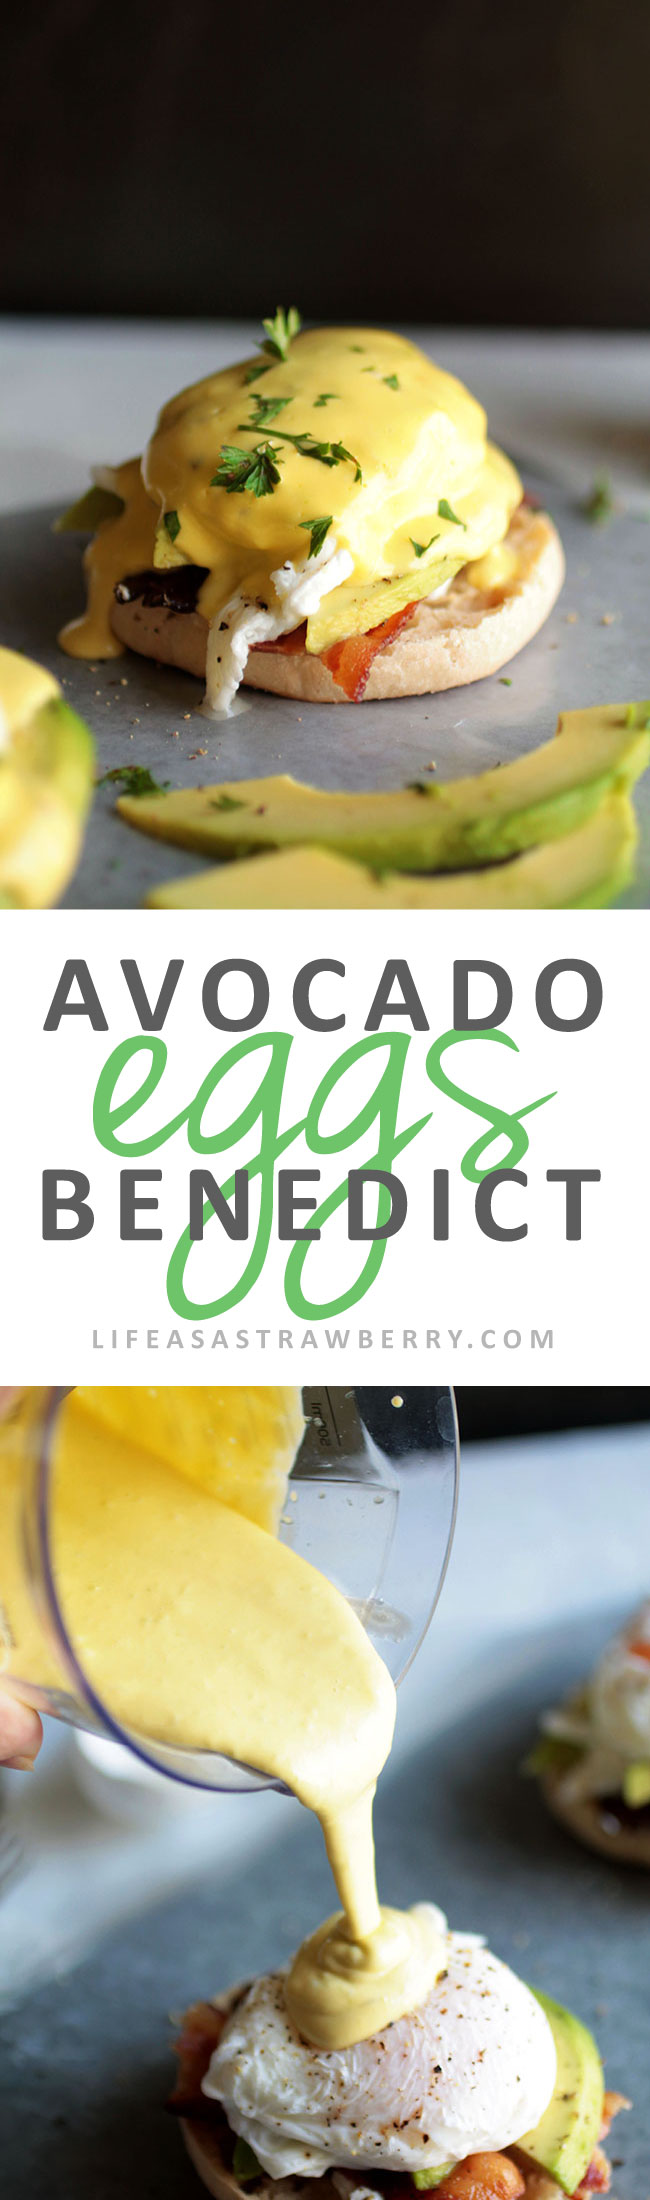 Avocado Eggs Benedict | Shake up your brunch routine with this easy eggs Benedict recipe! Complete with fresh, creamy avocado, crispy bacon, and tangy goat cheese for a fun twist on this classic breakfast recipe. Made with a foolproof blender hollandaise sauce!